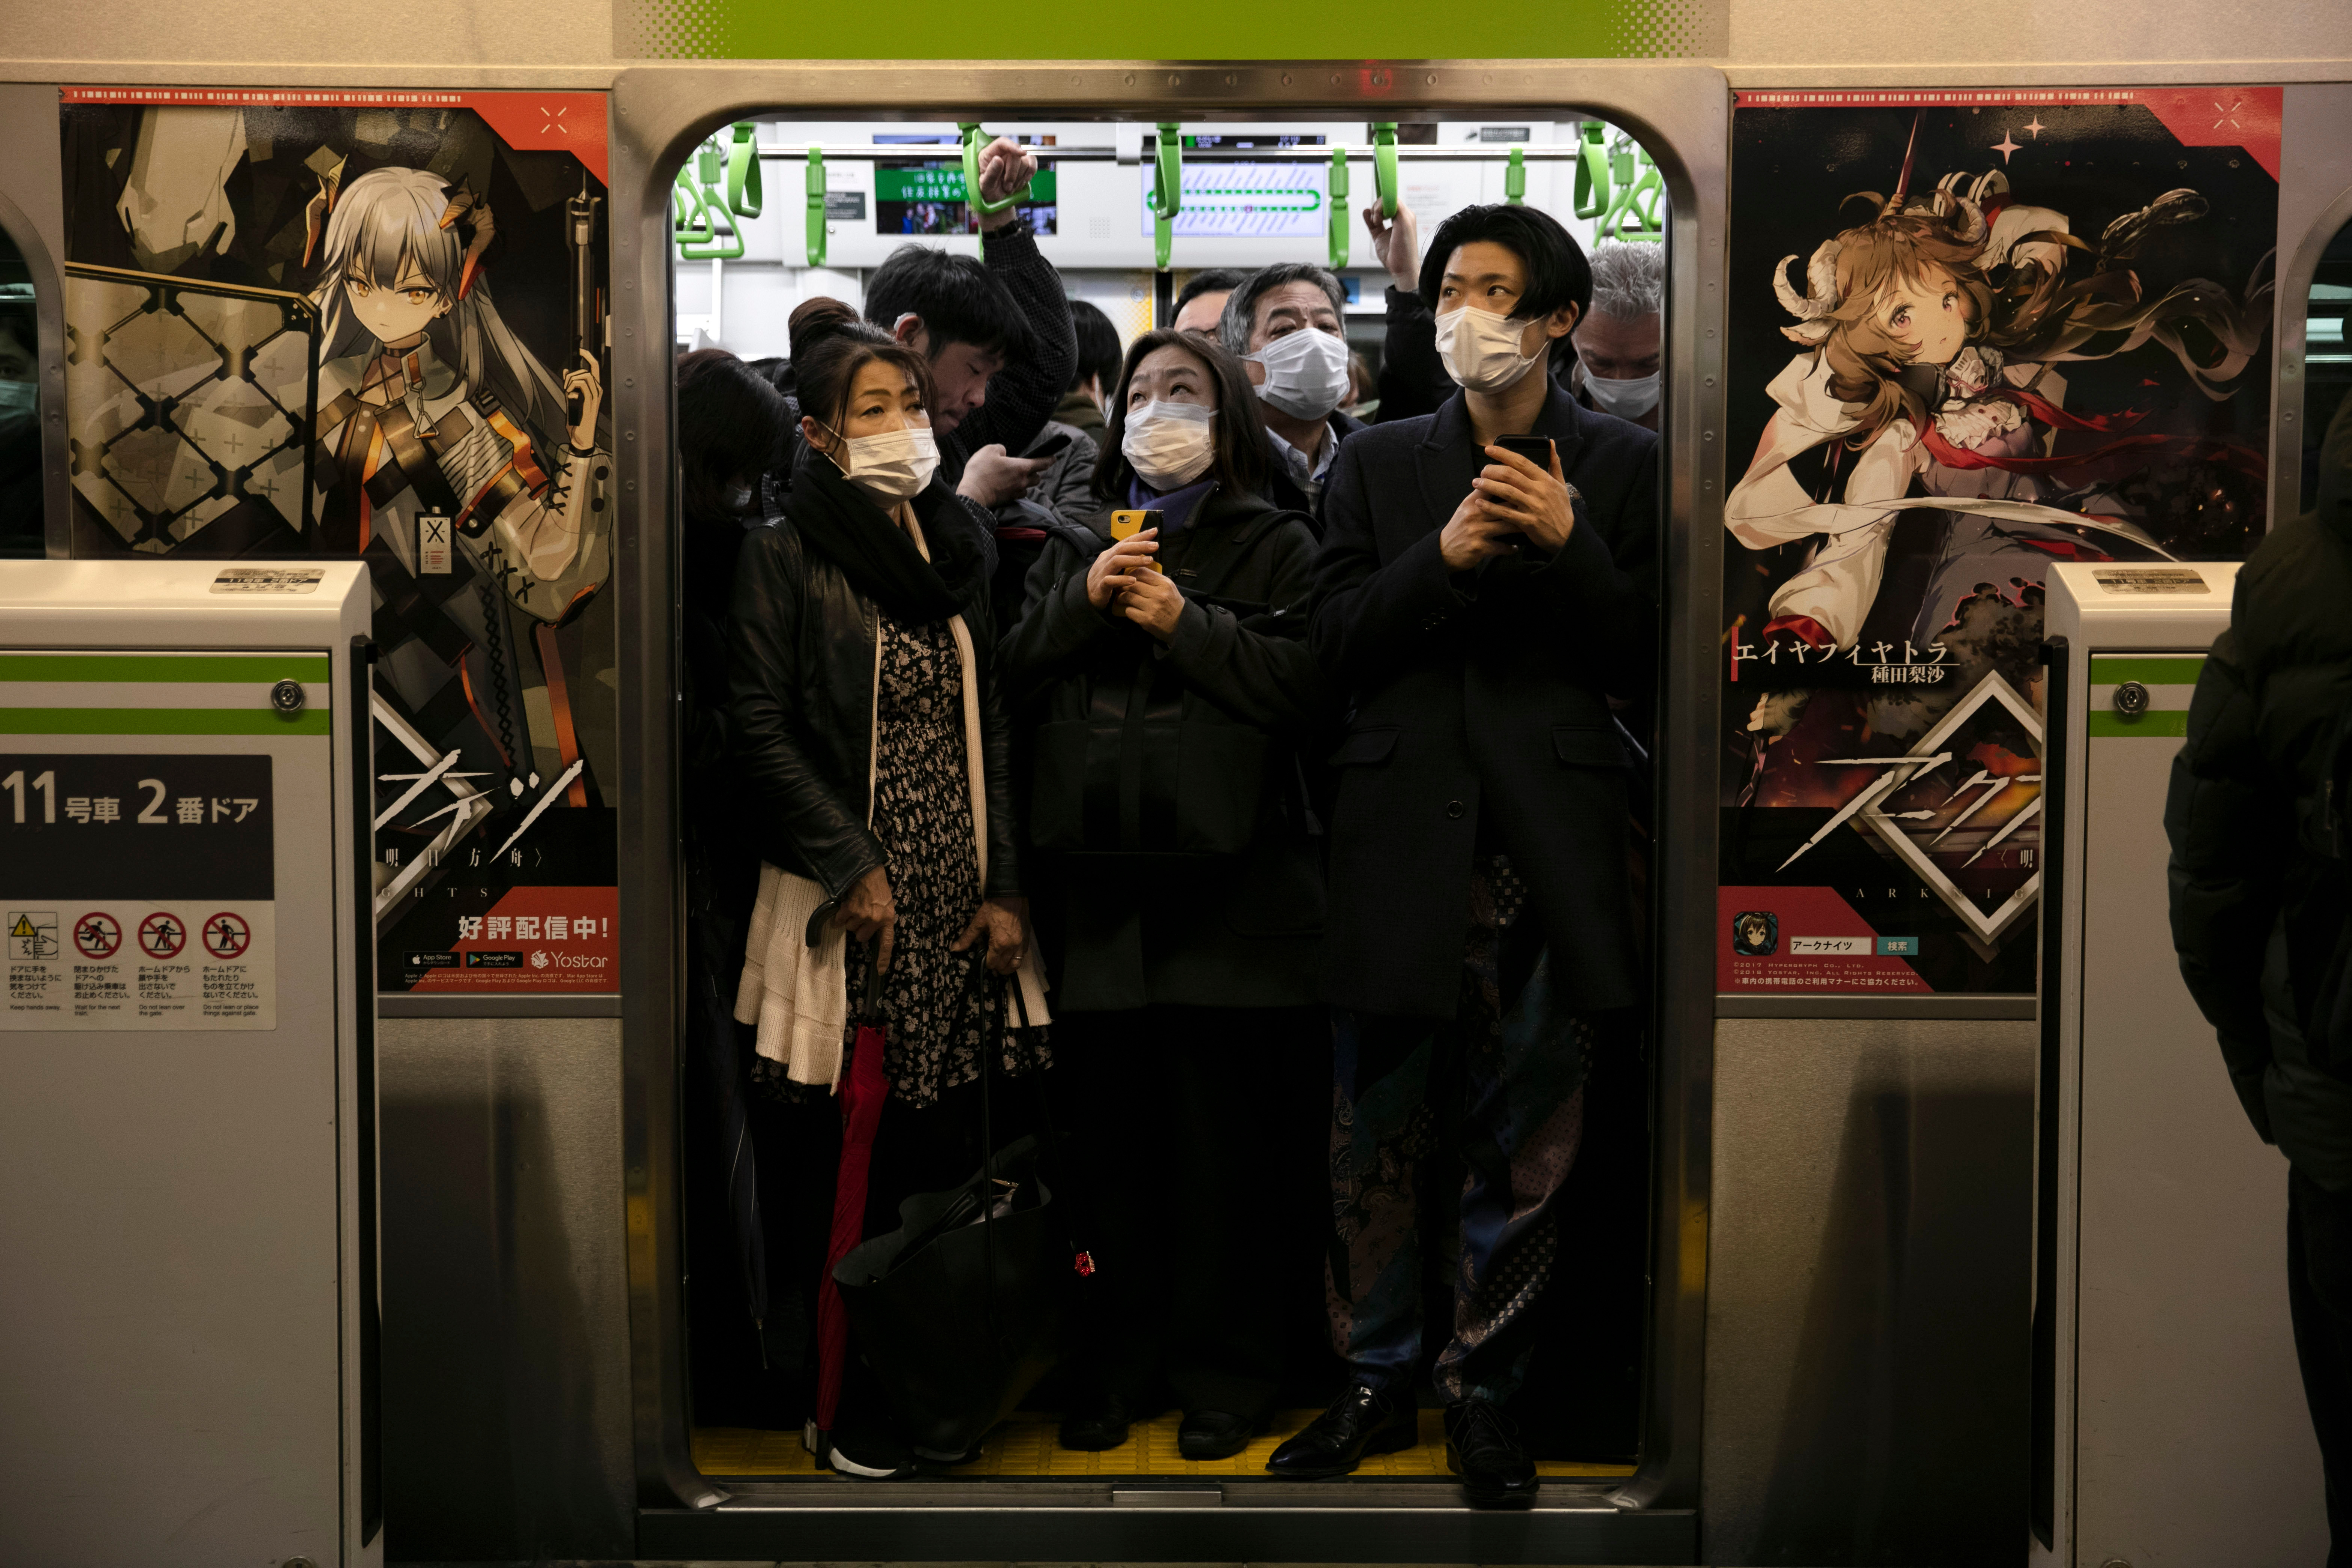 Commuters wearing masks stand in a packed train at the Shinagawa Station in Tokyo, . Coronavirus has spread to more than 60 countries, and more than 3,000 people have died from the COVID-19 illness it causesVirus Outbreak , Tokyo, Japan - 02 Mar 2020